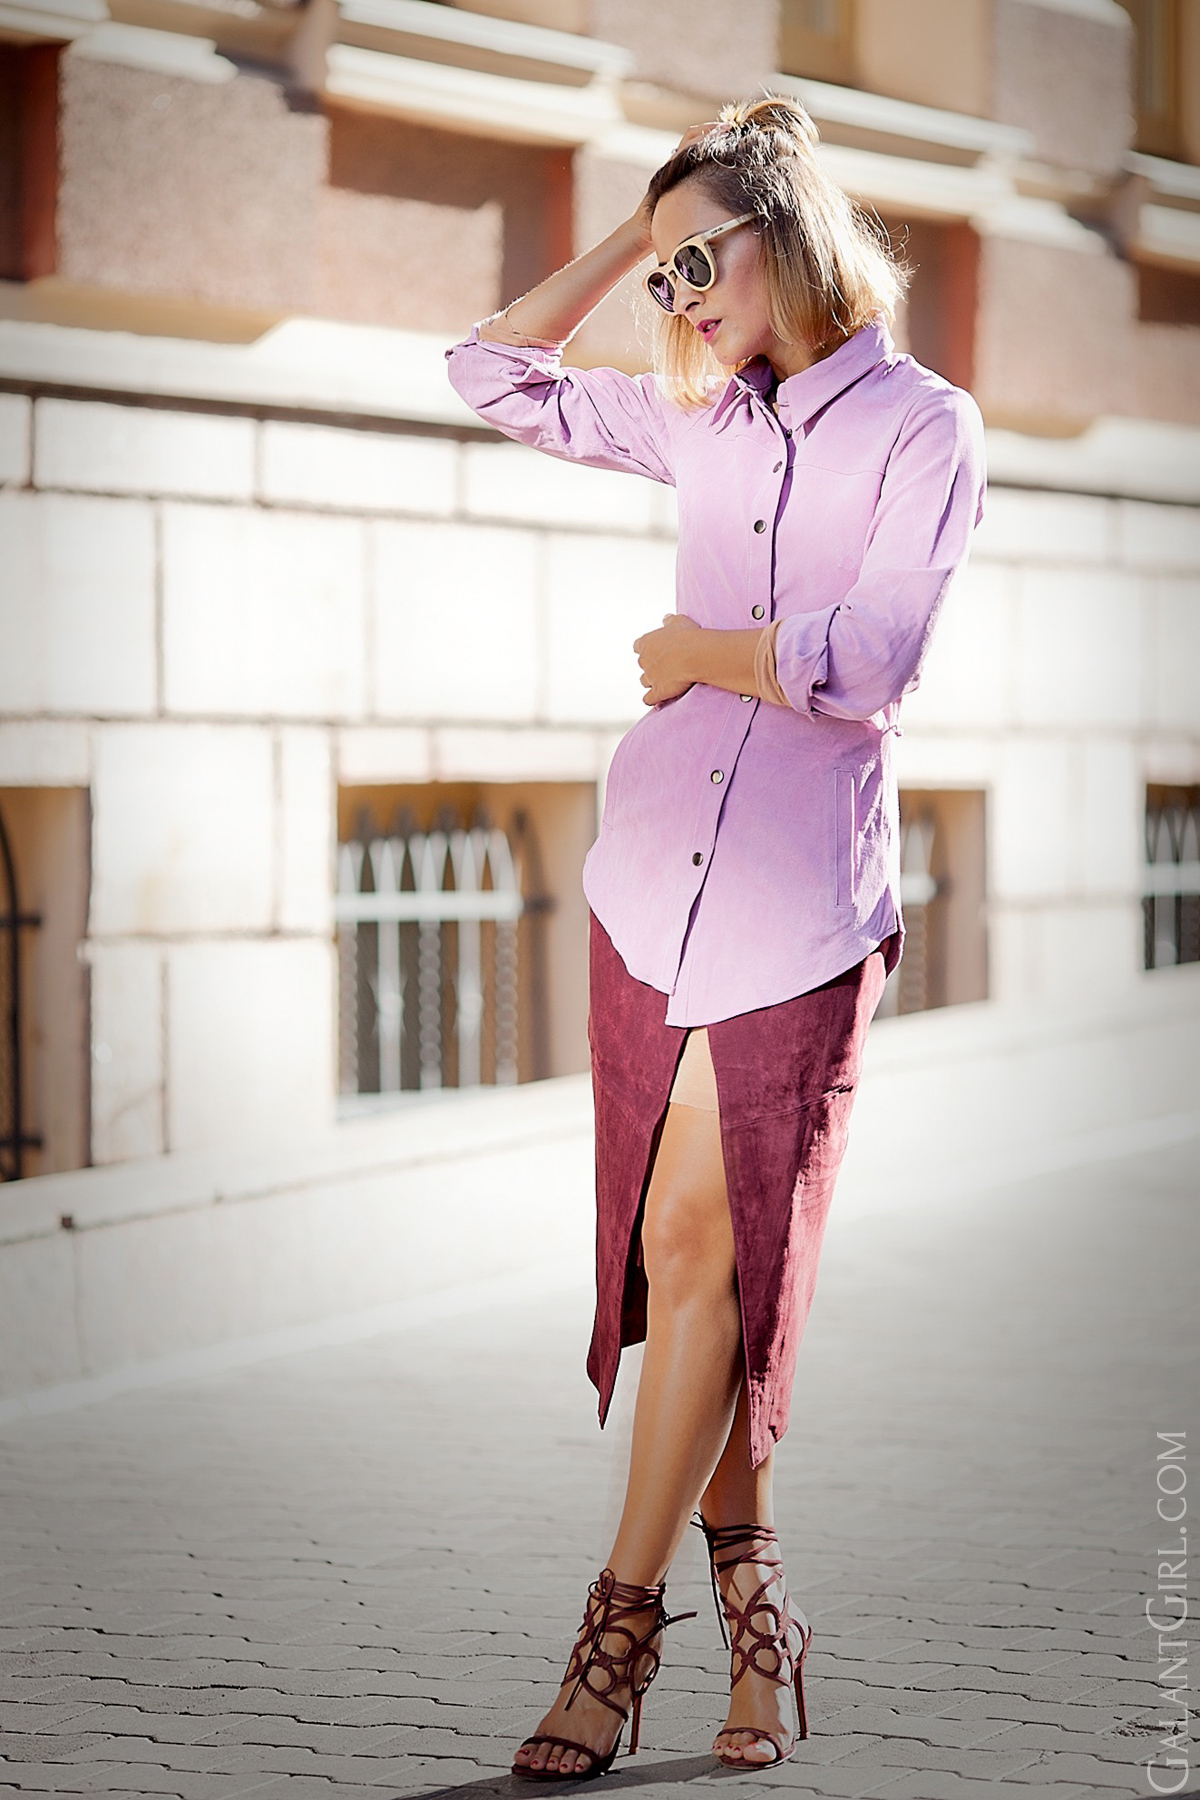 suede+wrap+skirt-suede+shirt+outfit-fashion+blog-galant+girl